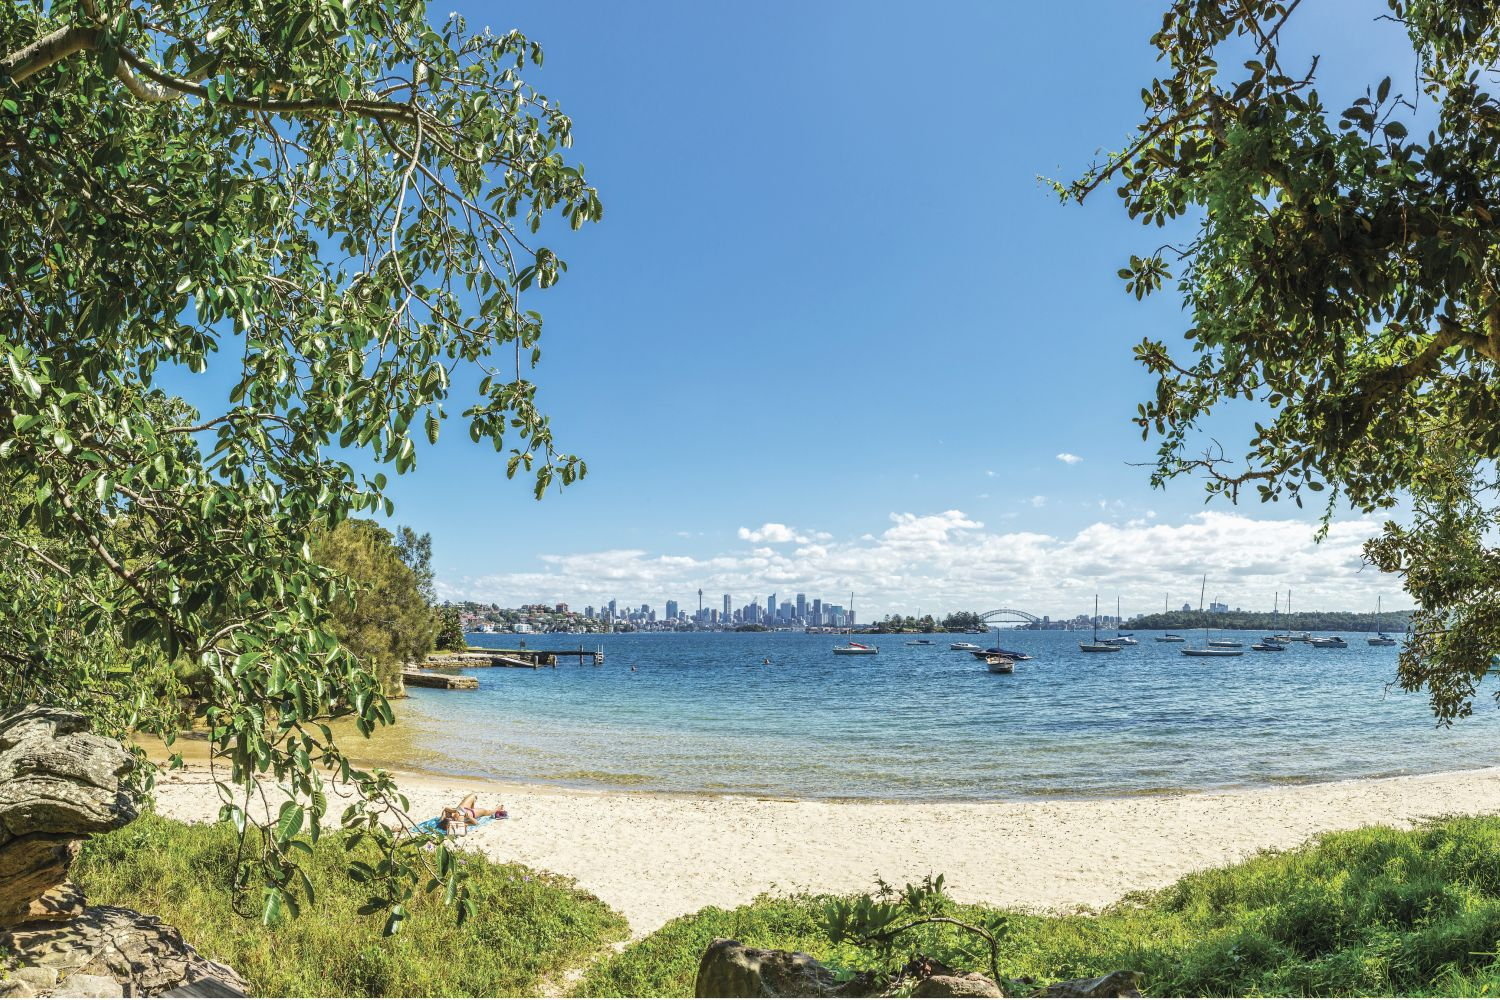 Views of Hermit Bay and Sydney Harbour from the Hermitage Foreshore walking track